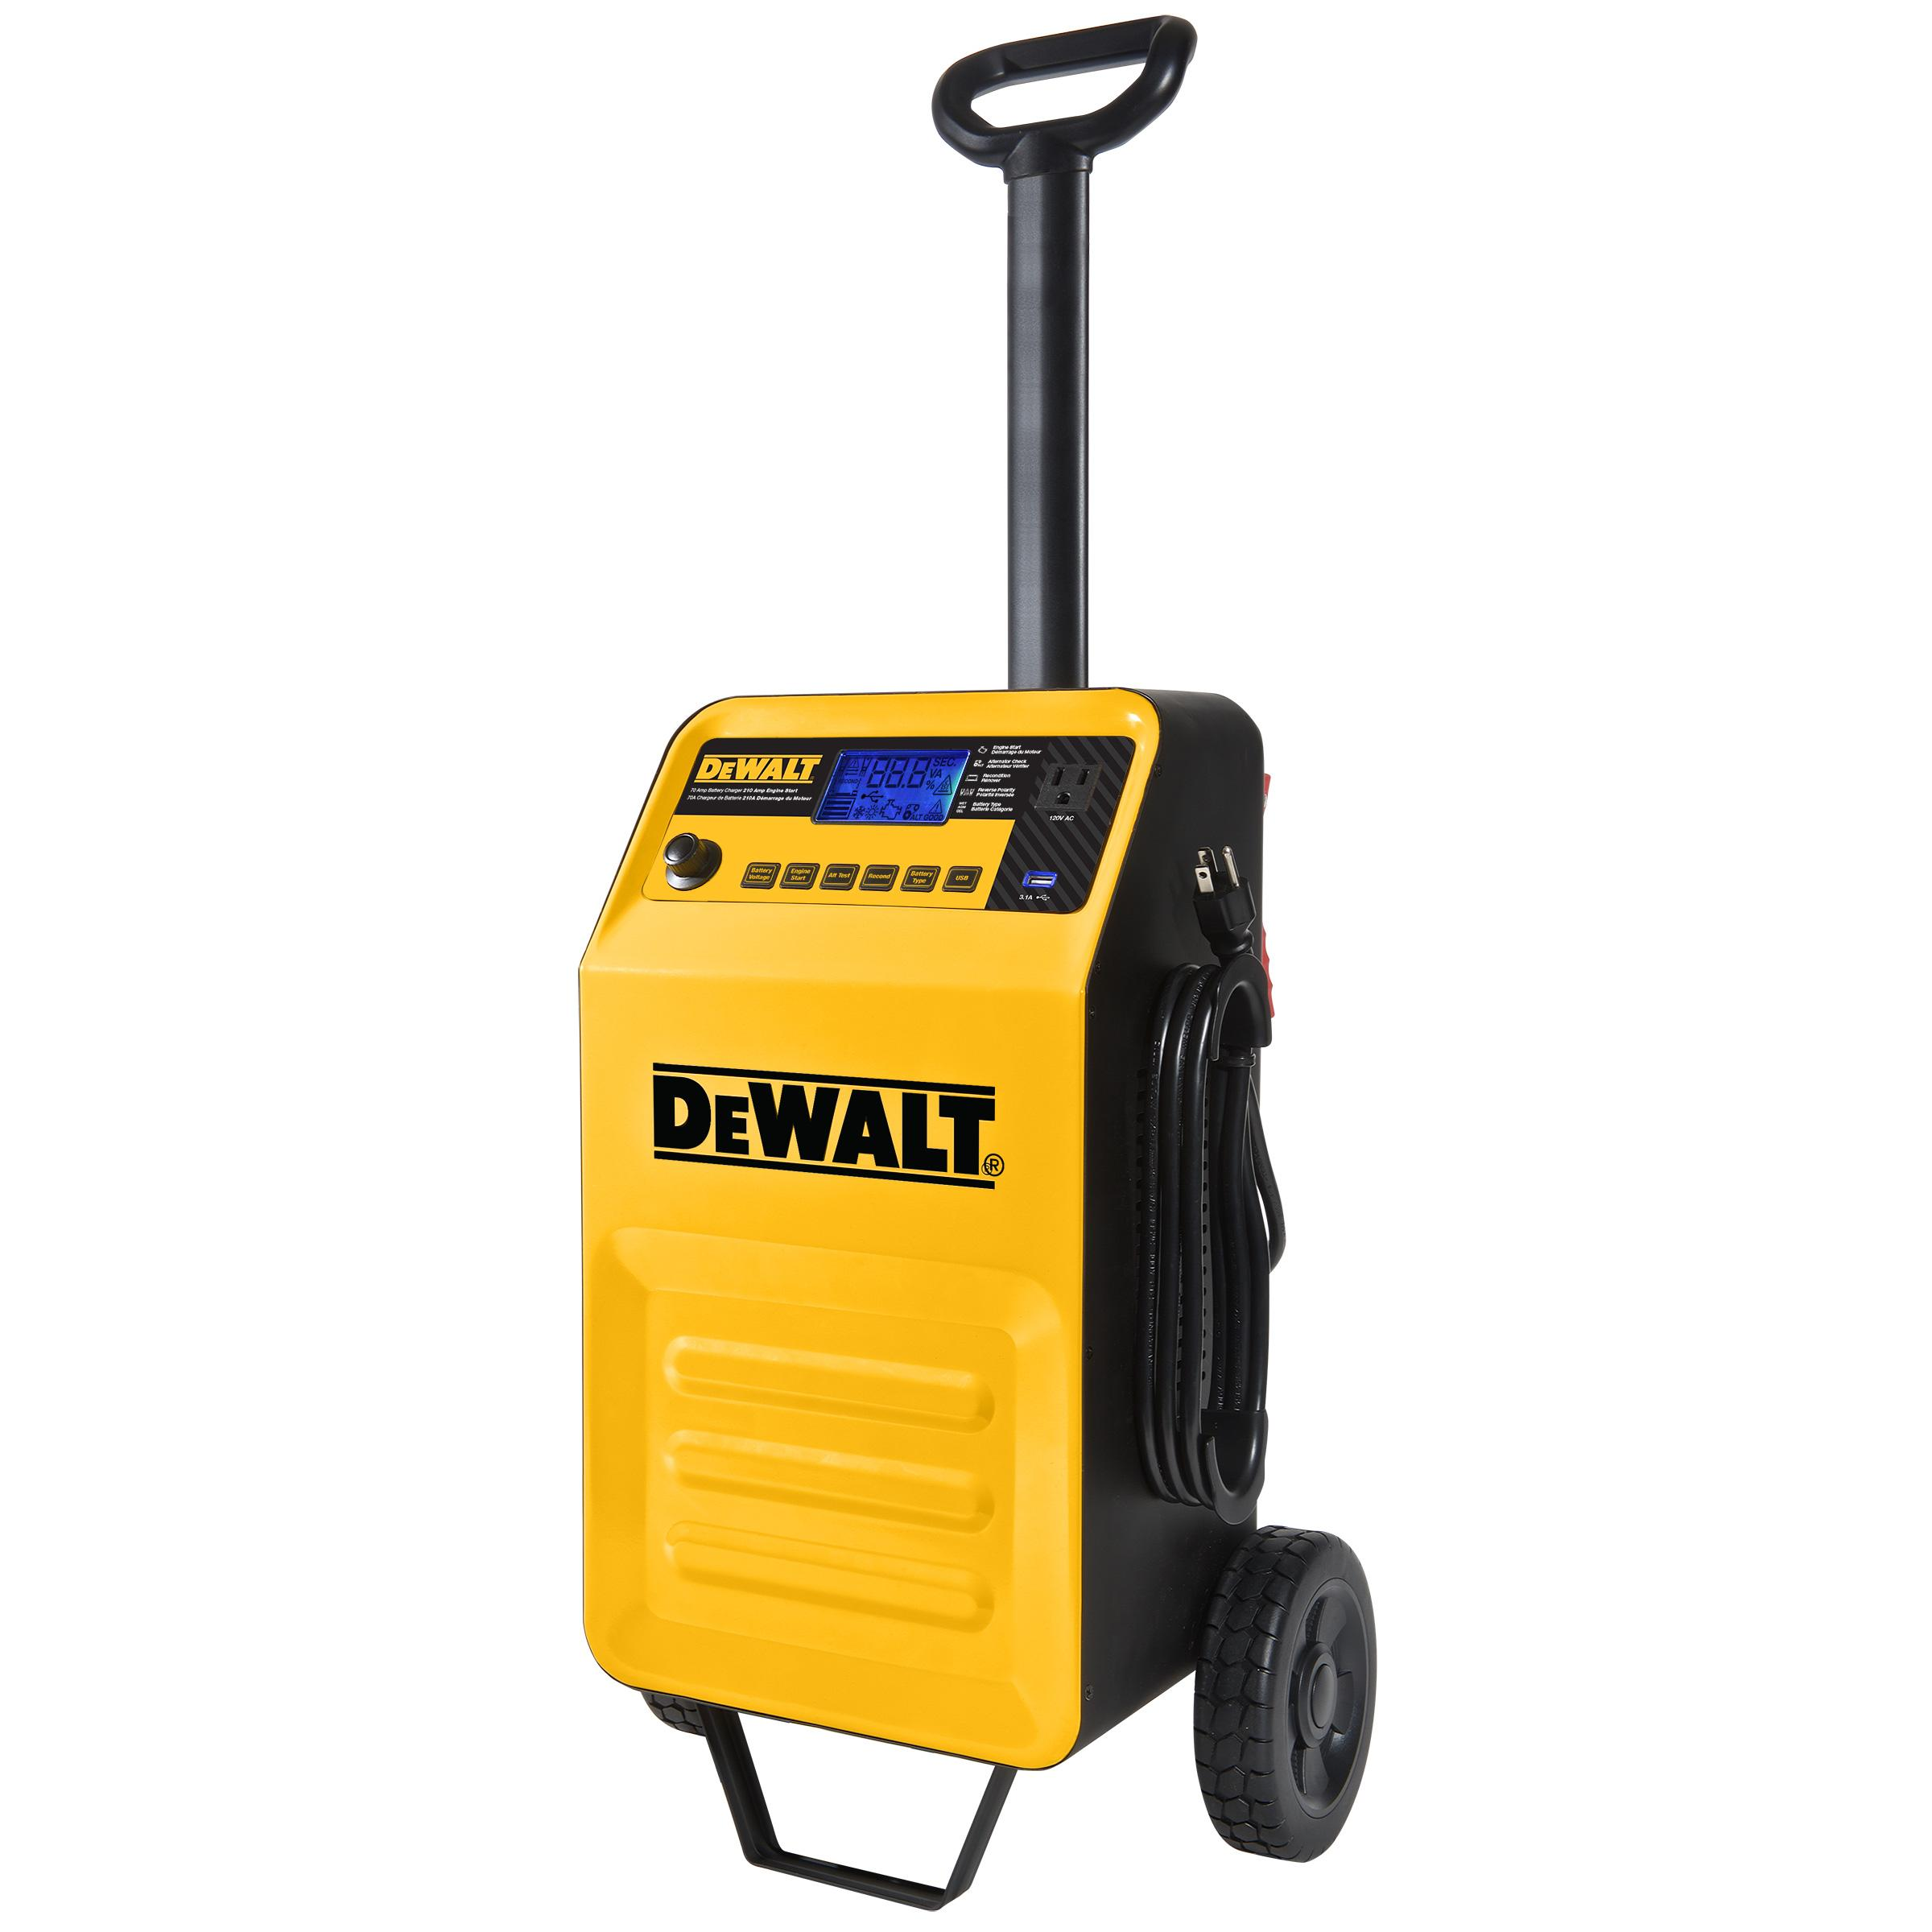 dewalt dxaec210 70 amp rolling battery charger with 210 amp engine start and 2 amp. Black Bedroom Furniture Sets. Home Design Ideas